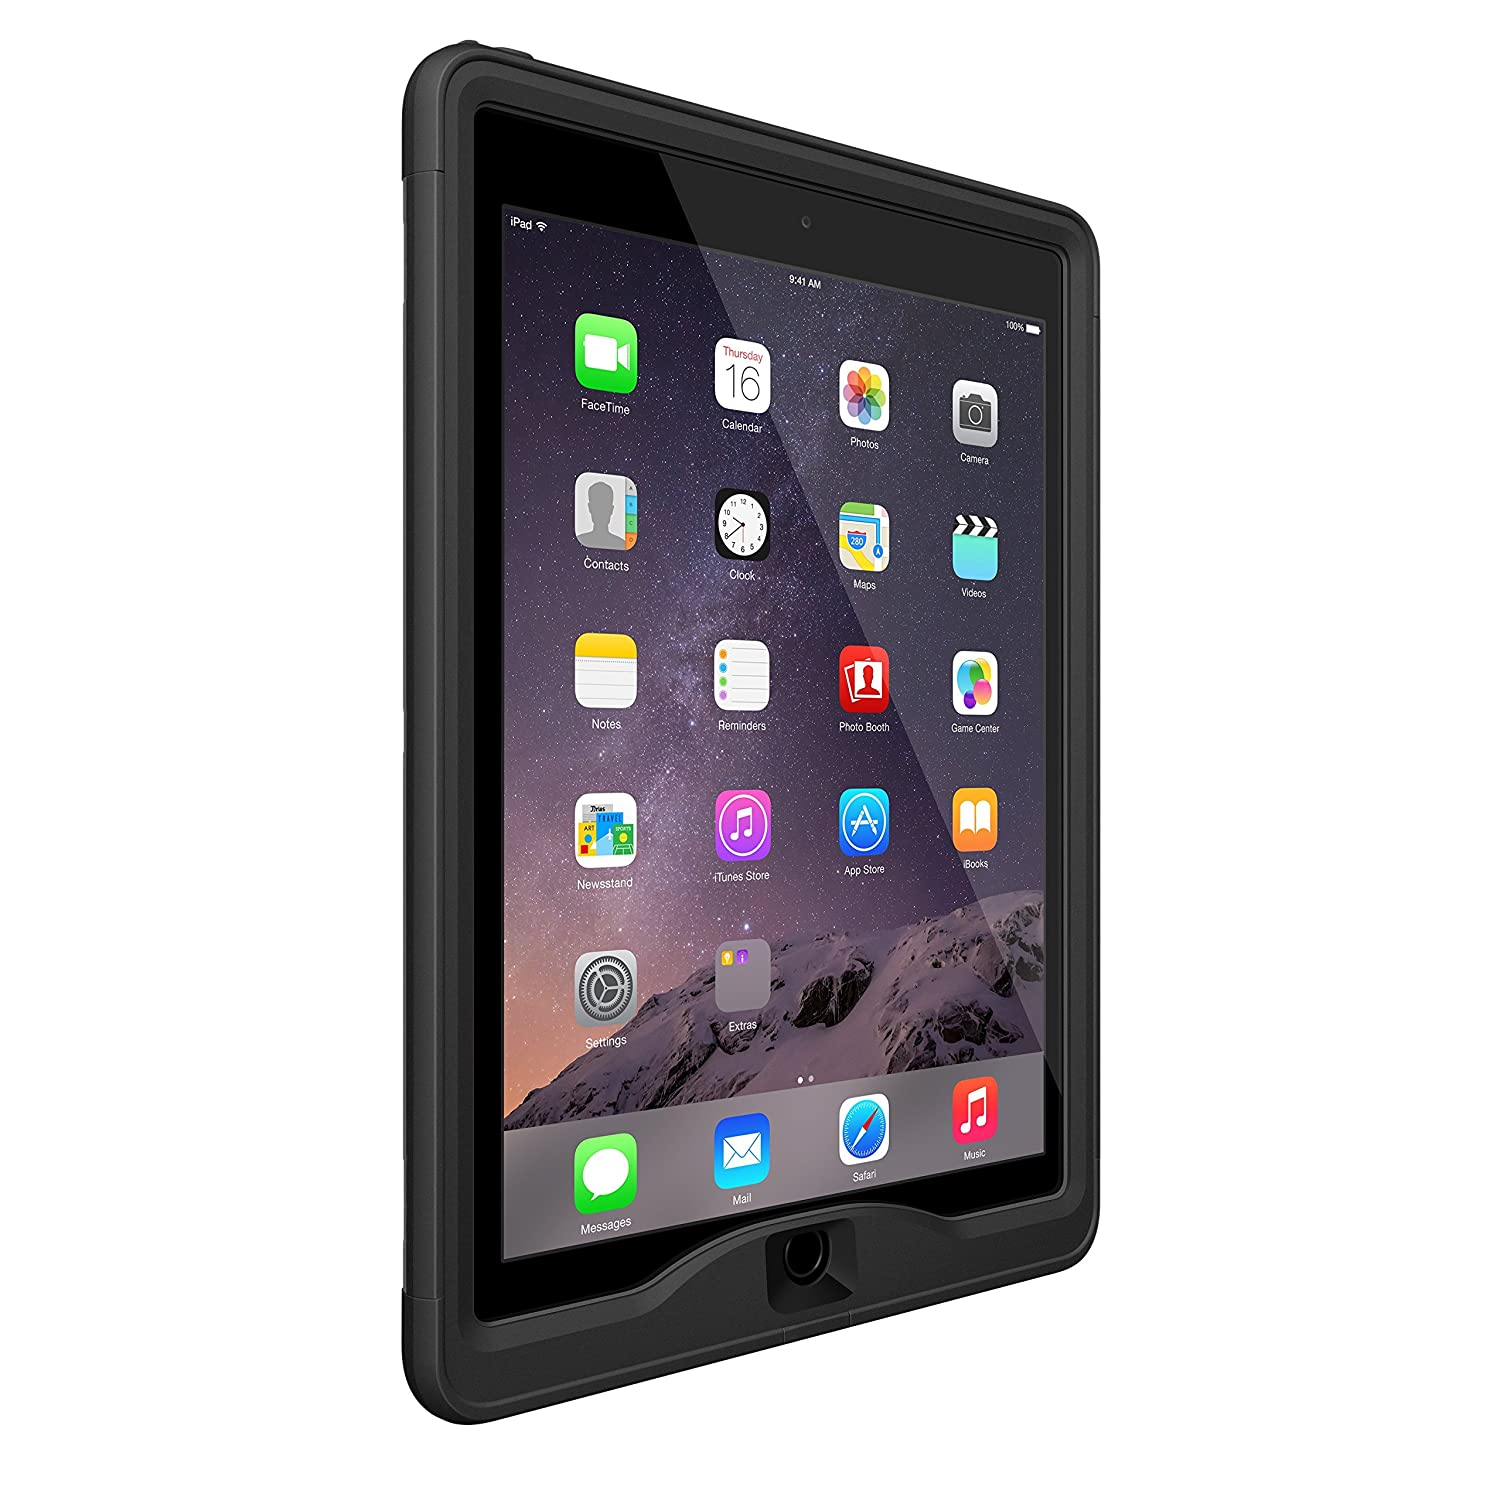 promo code cd265 7c1c0 LifeProof NÜÜD SERIES iPad Air 2 Waterproof Case - Retail Packaging - BLACK